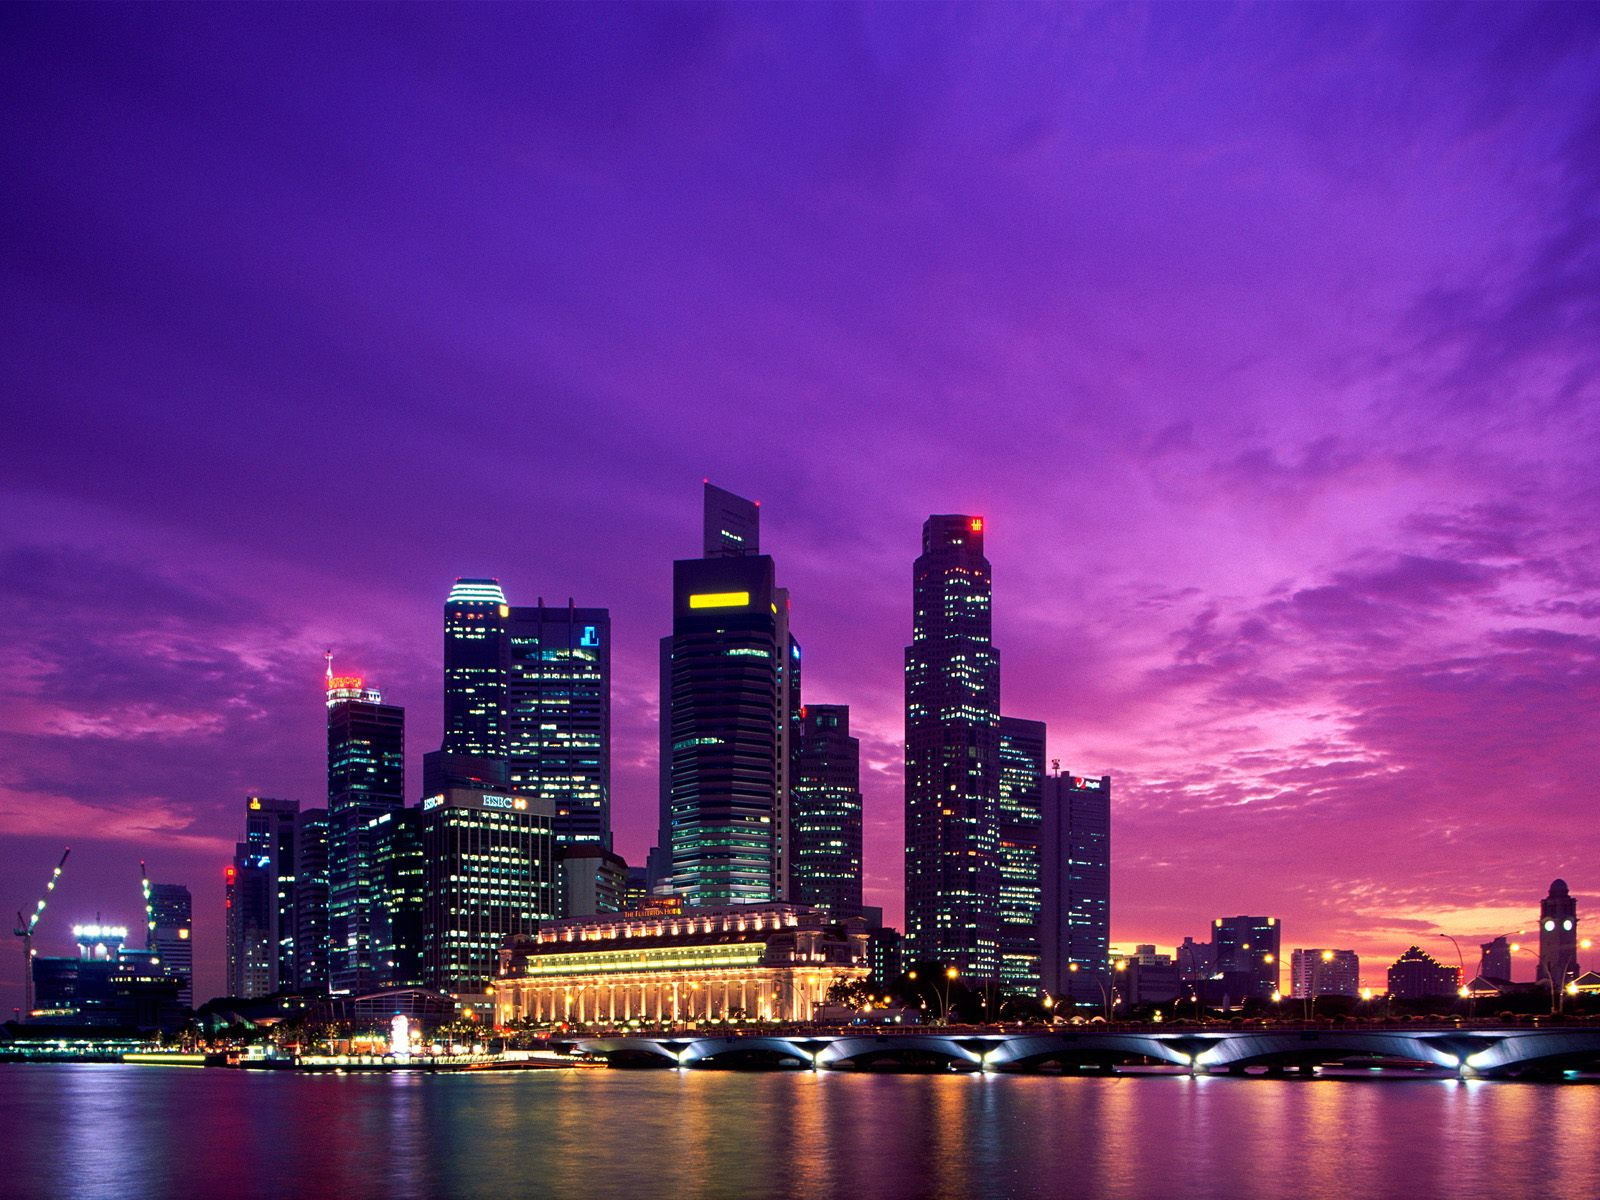 Twilight Singapore 1440.33 Kb